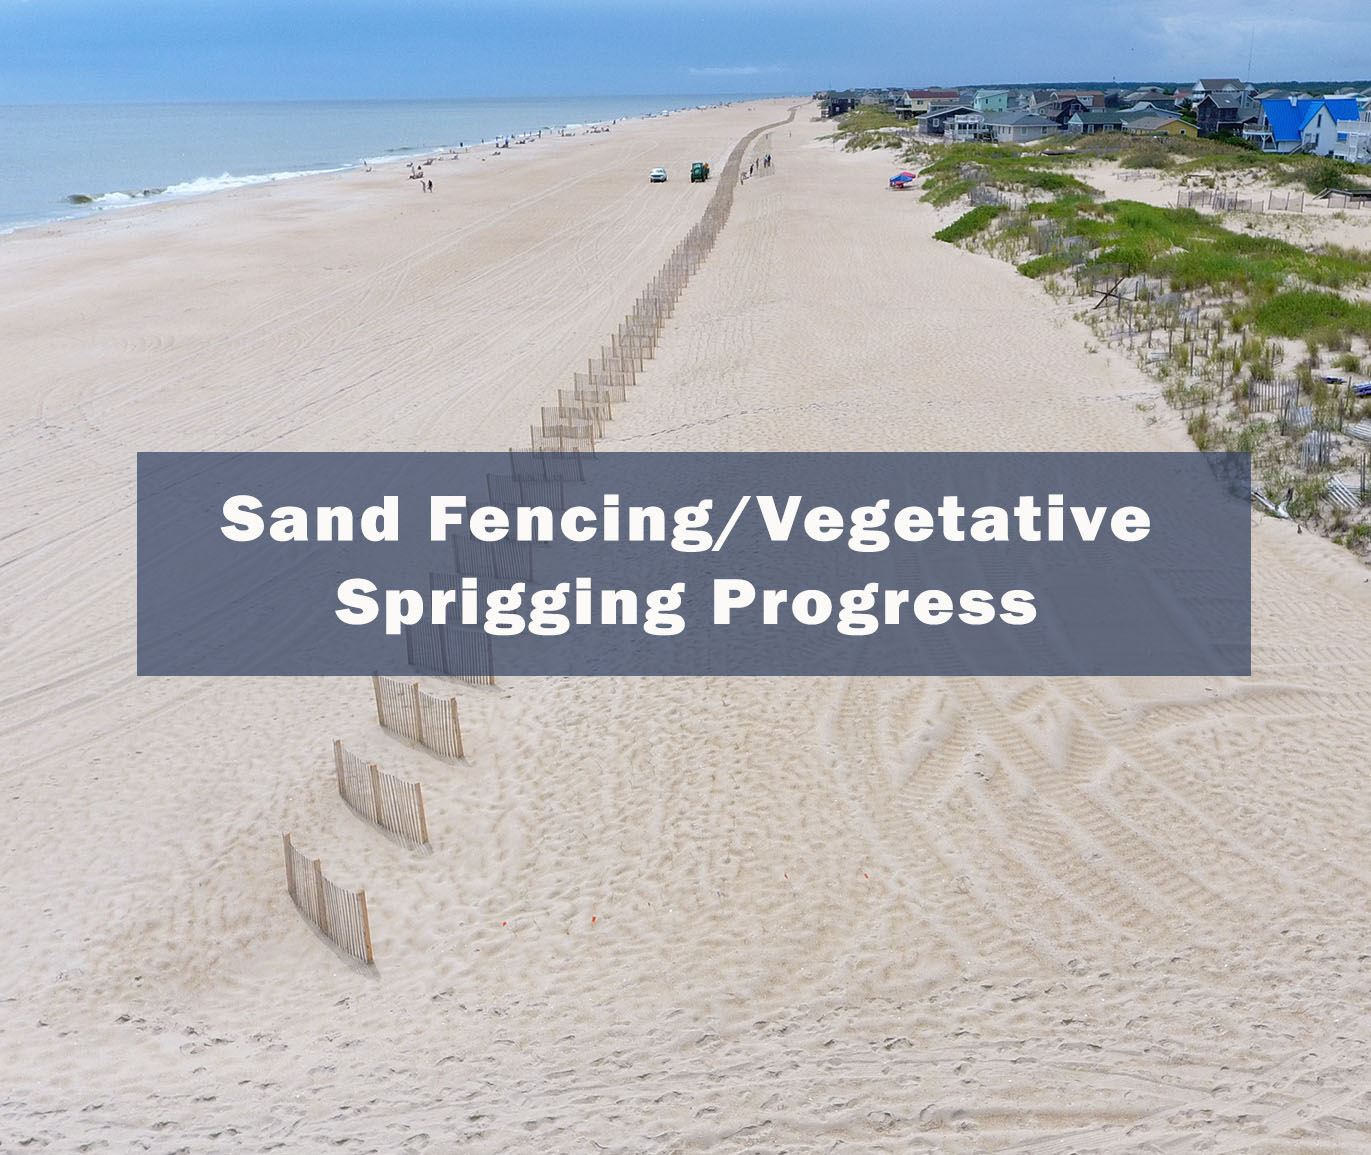 Sand Fencing Vegetative Sprigging Progress Map